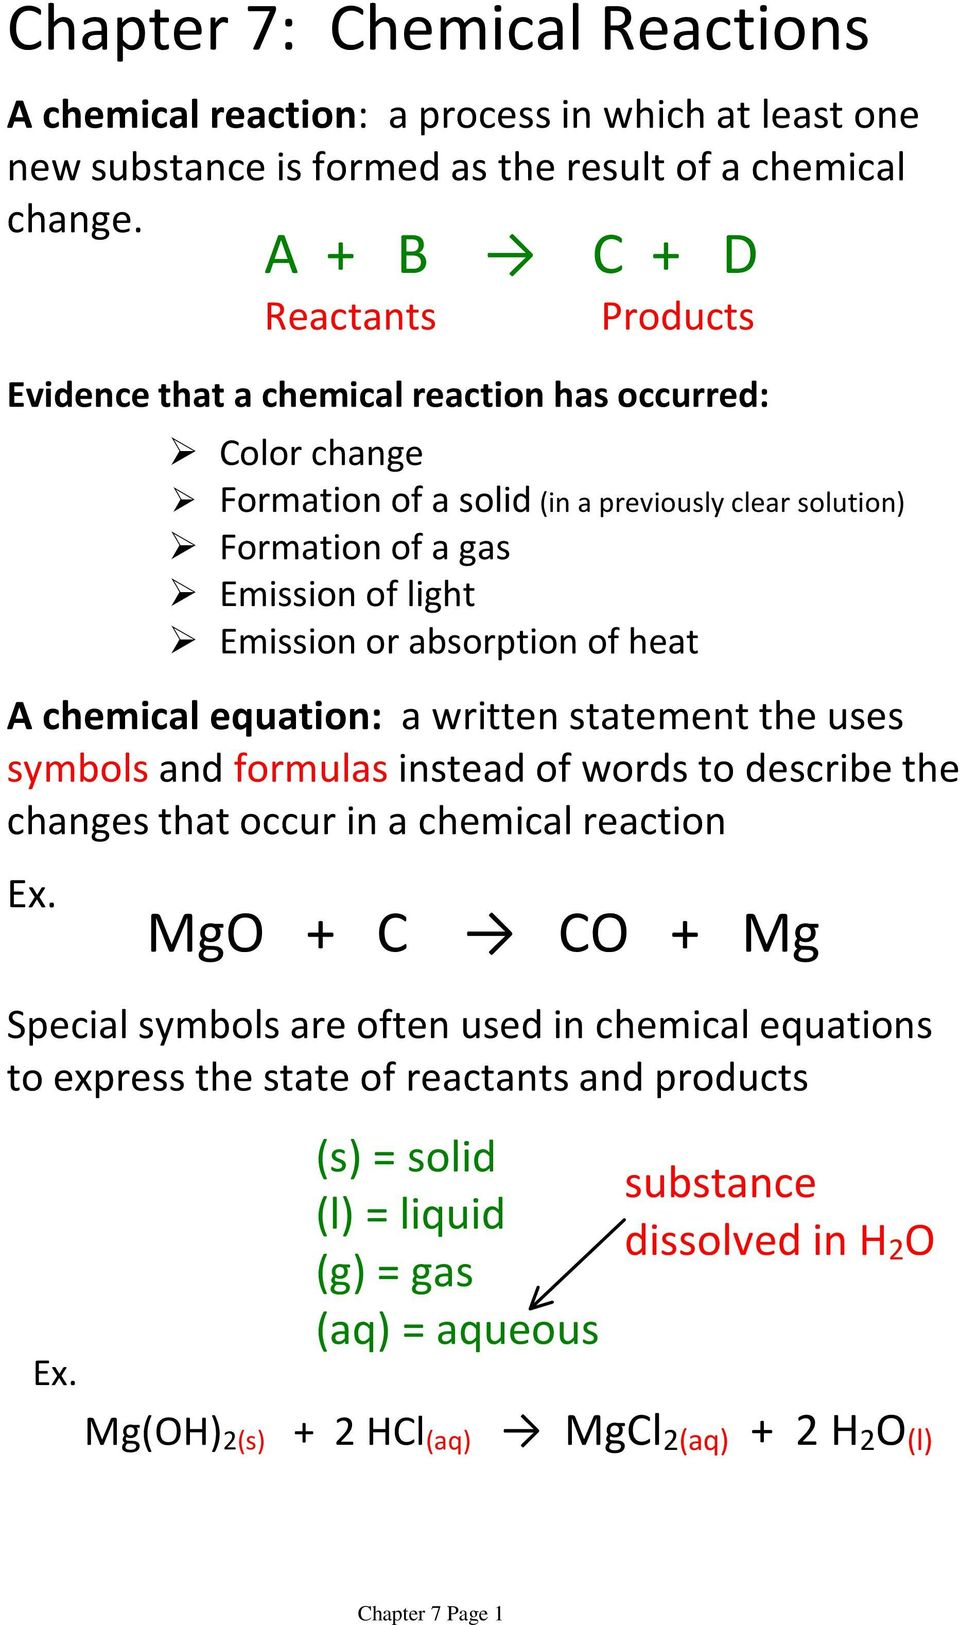 Chapter 7 Chemical Reactions Pdf